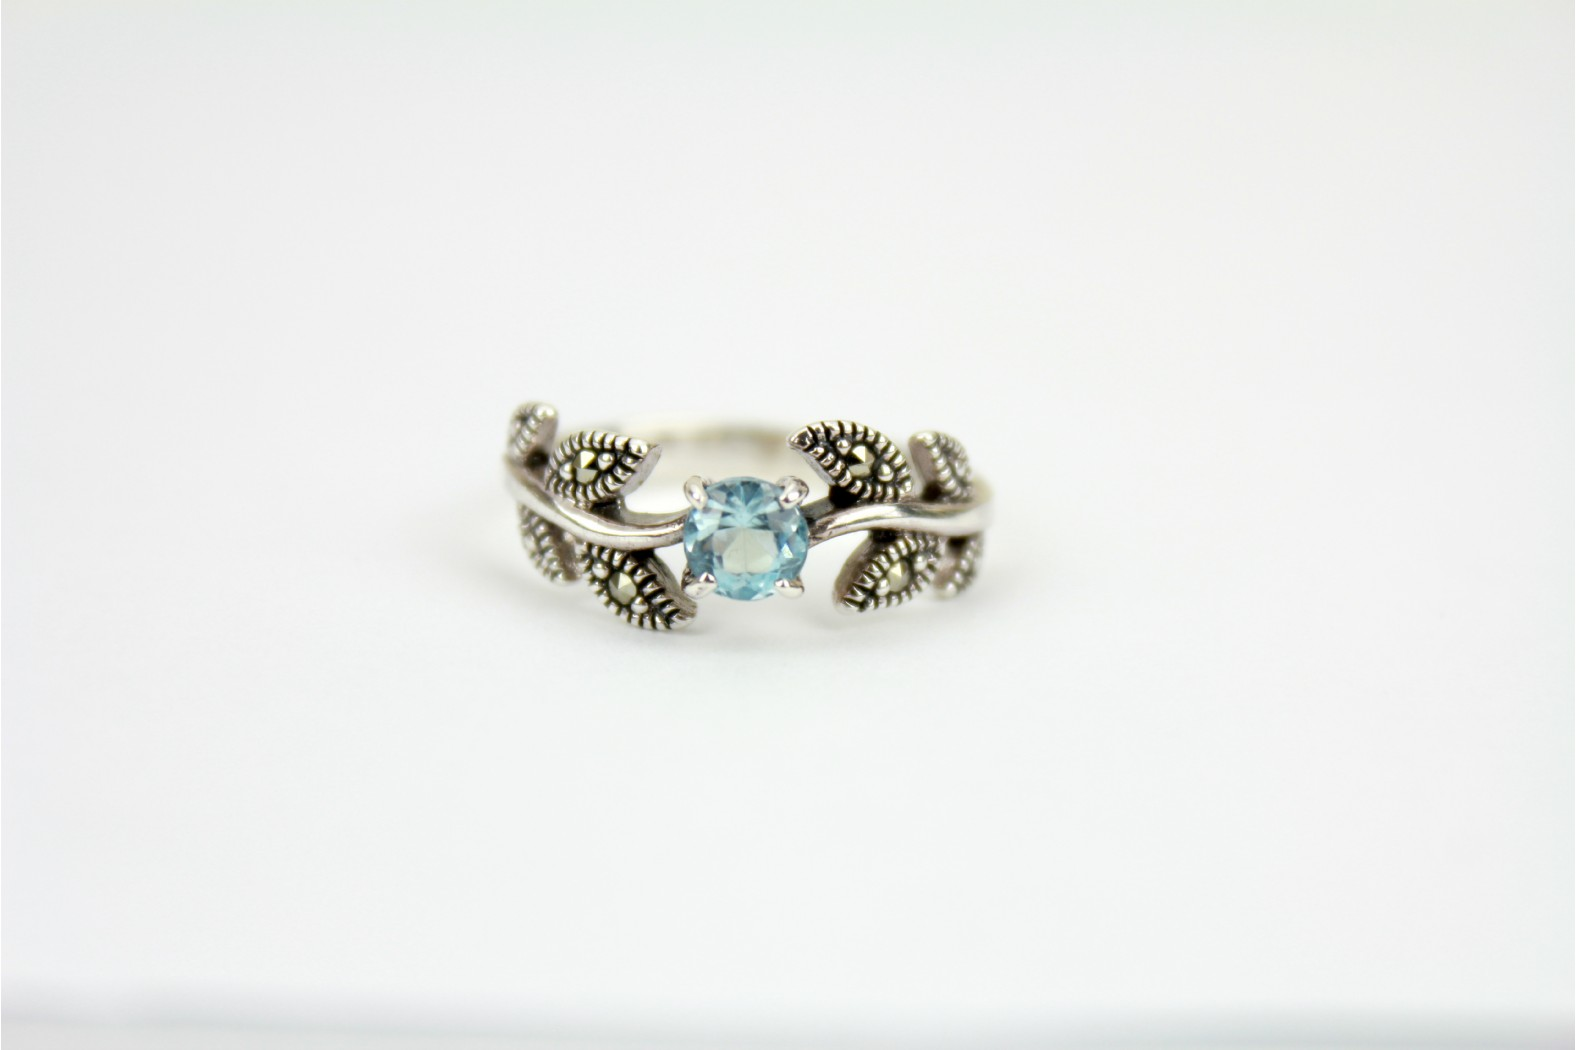 Stunning creation Blue Topaz with Marcasite stones set on vine leaf style detailing. Size 8 or P